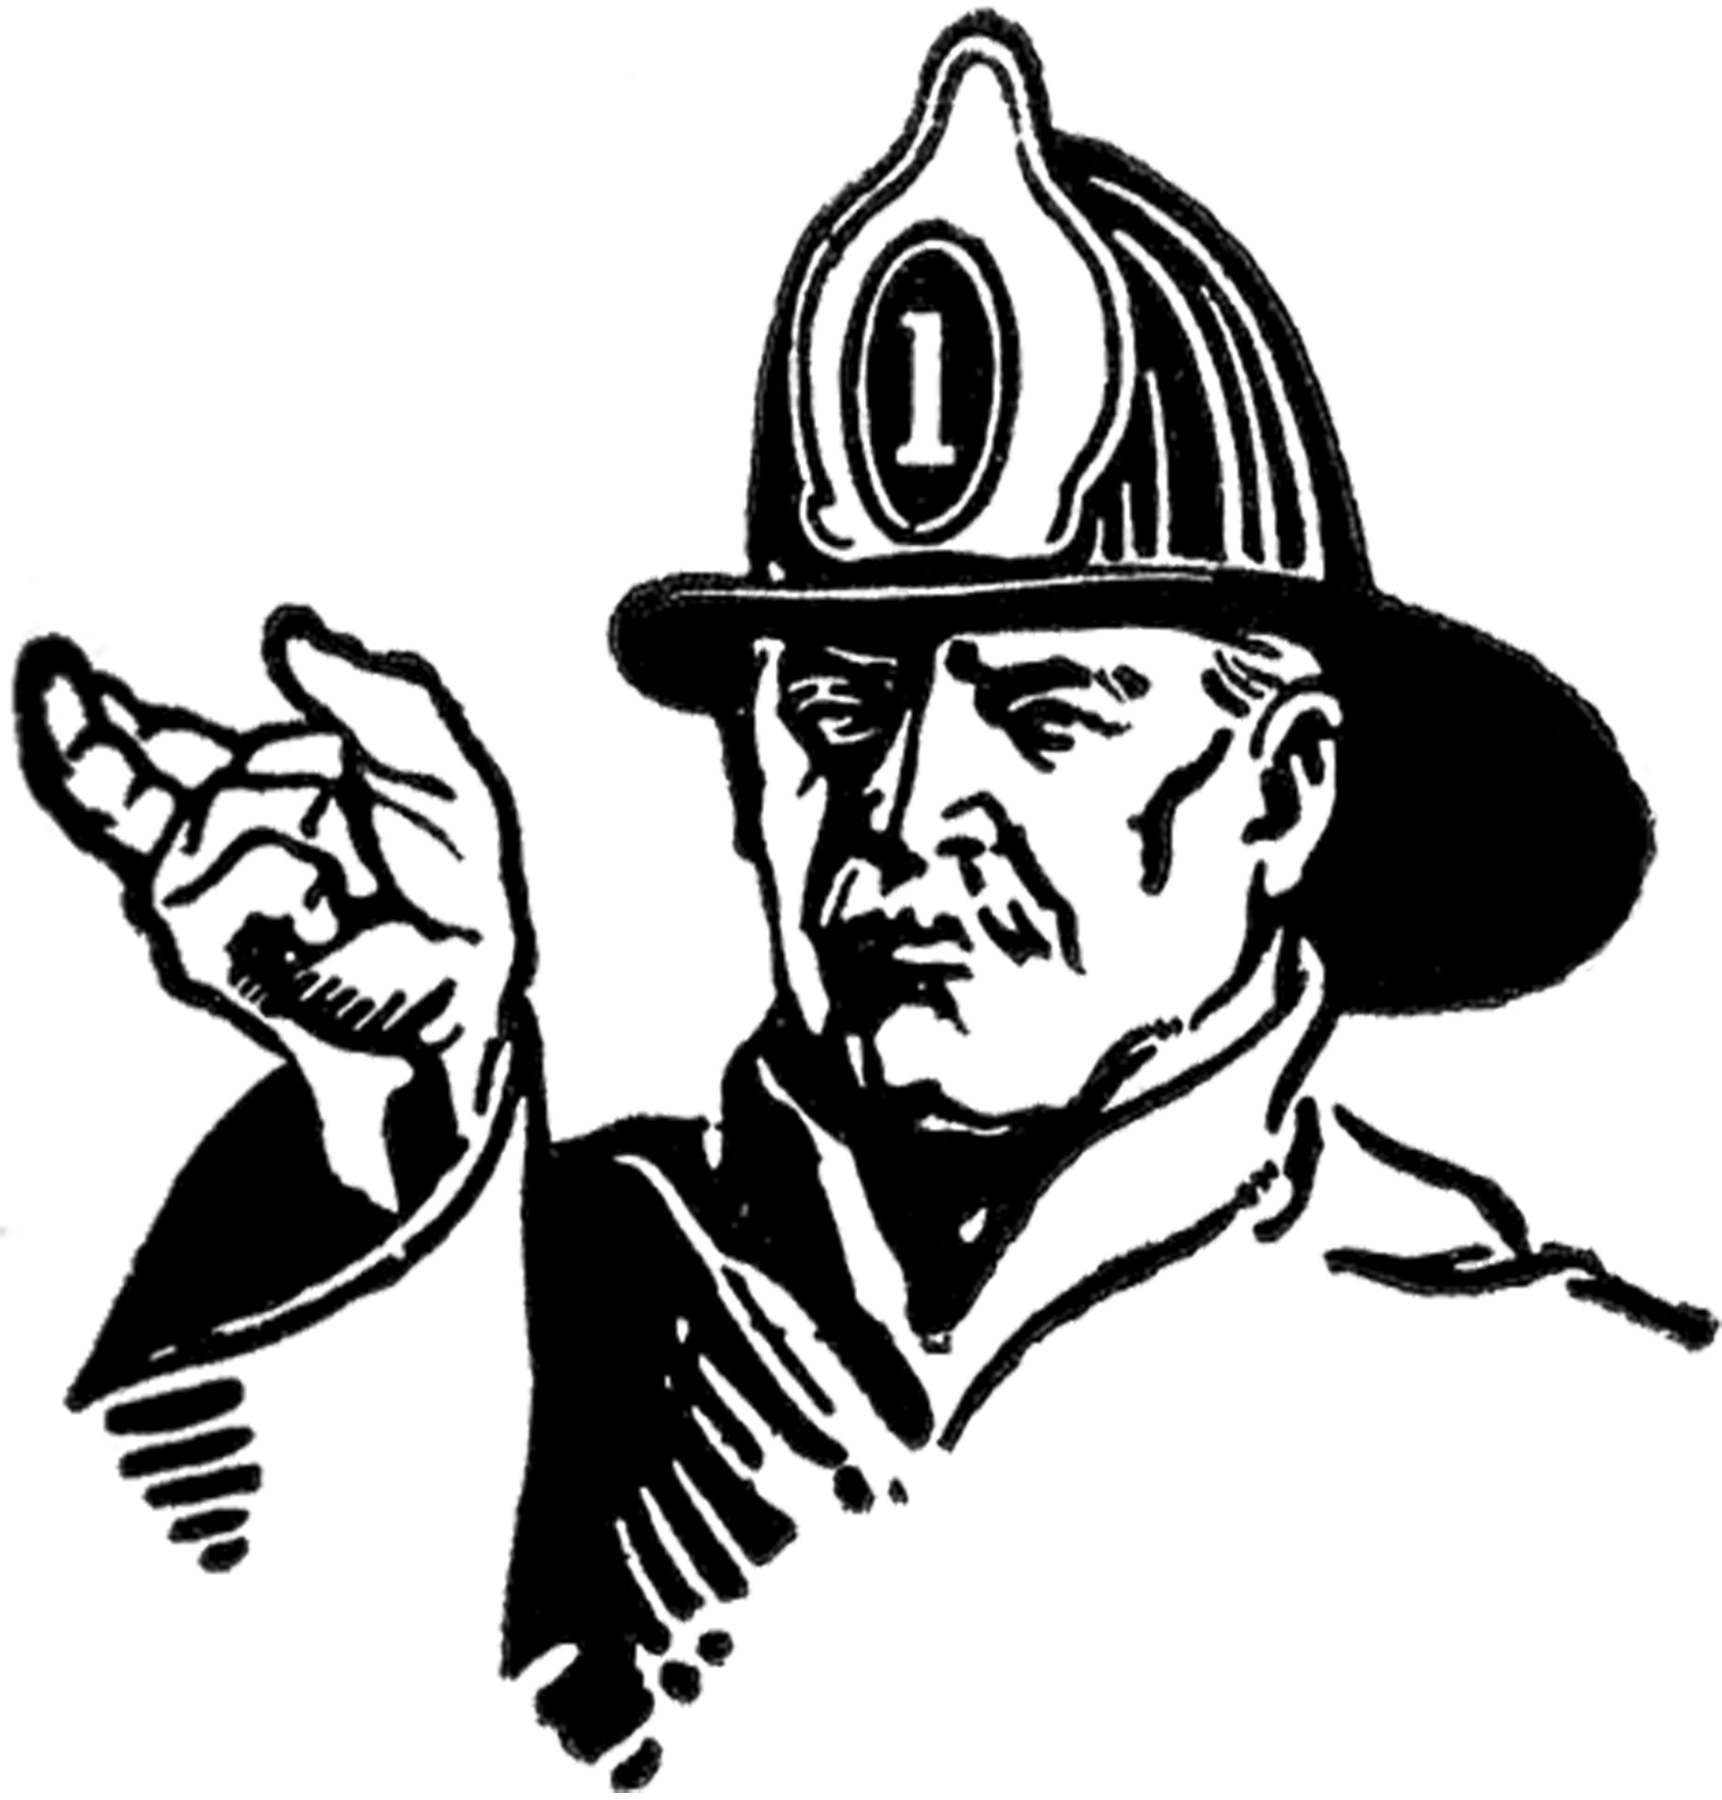 coloring fireman clipart black and white firefighter cartoon characters clipart panda free fireman and clipart white coloring black